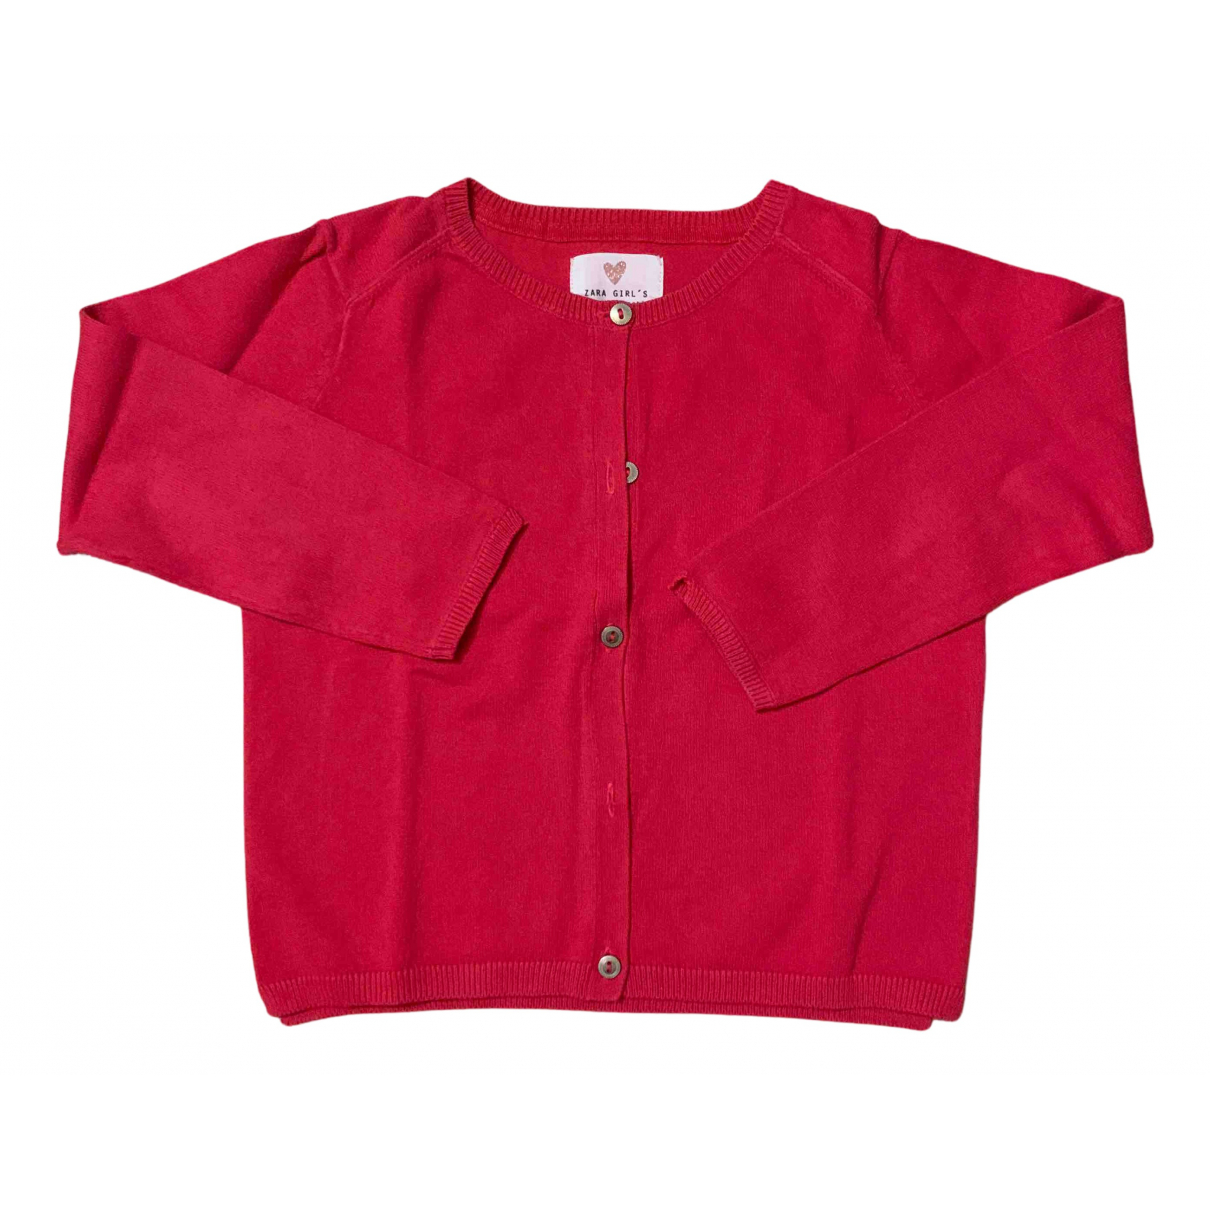 Zara N Red Cotton Knitwear for Kids 5 years - up to 108cm FR